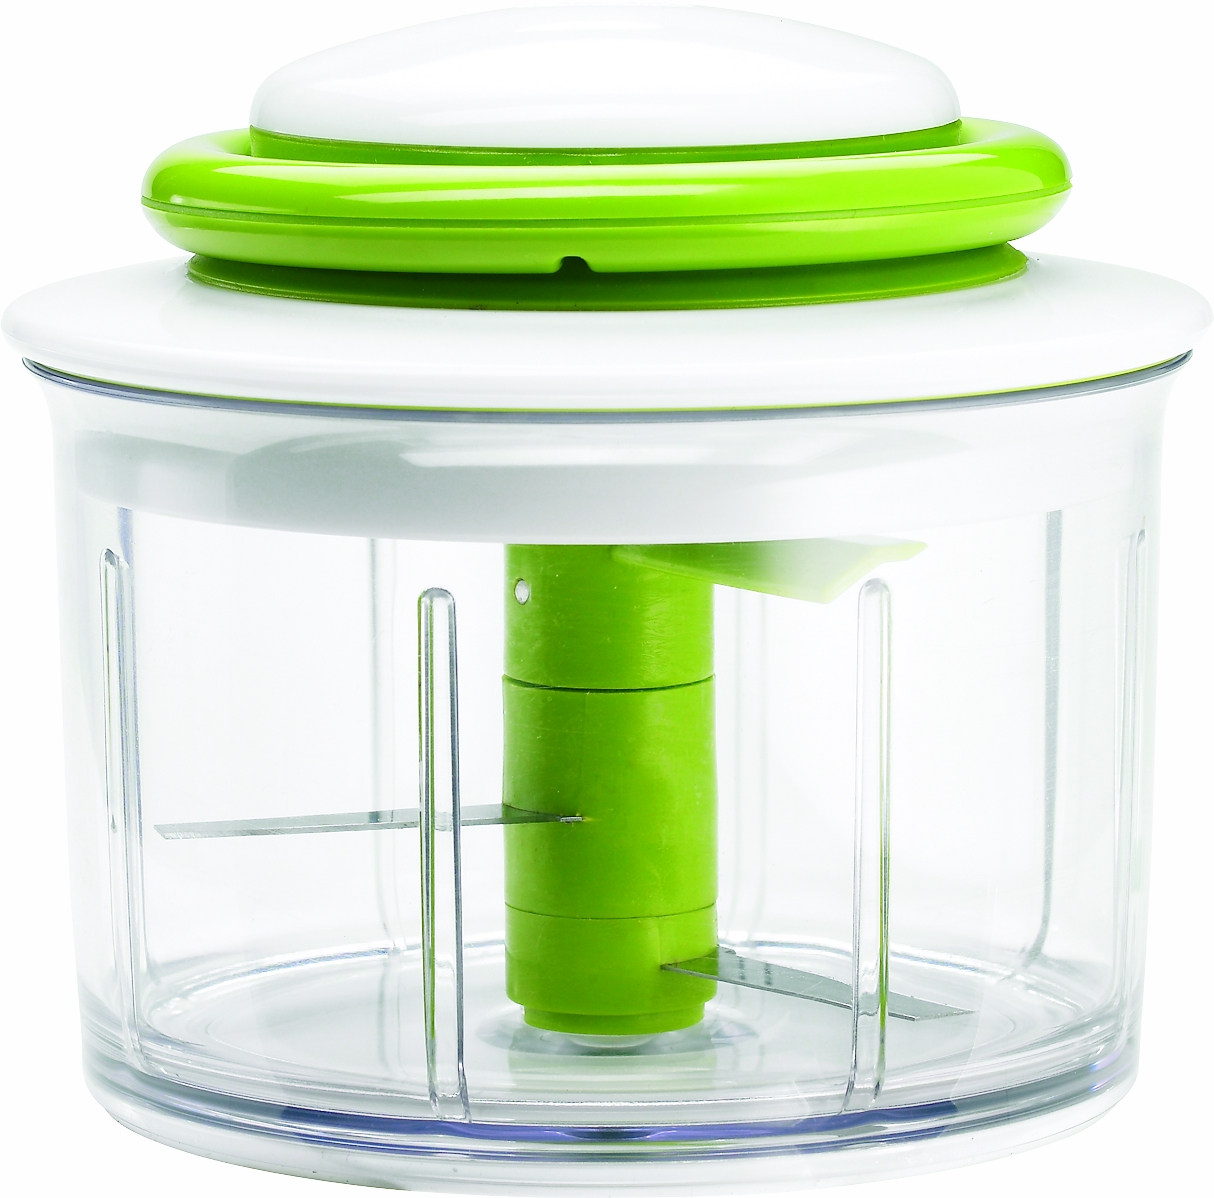 Chef'N VeggiChop Food Processor in Arugula